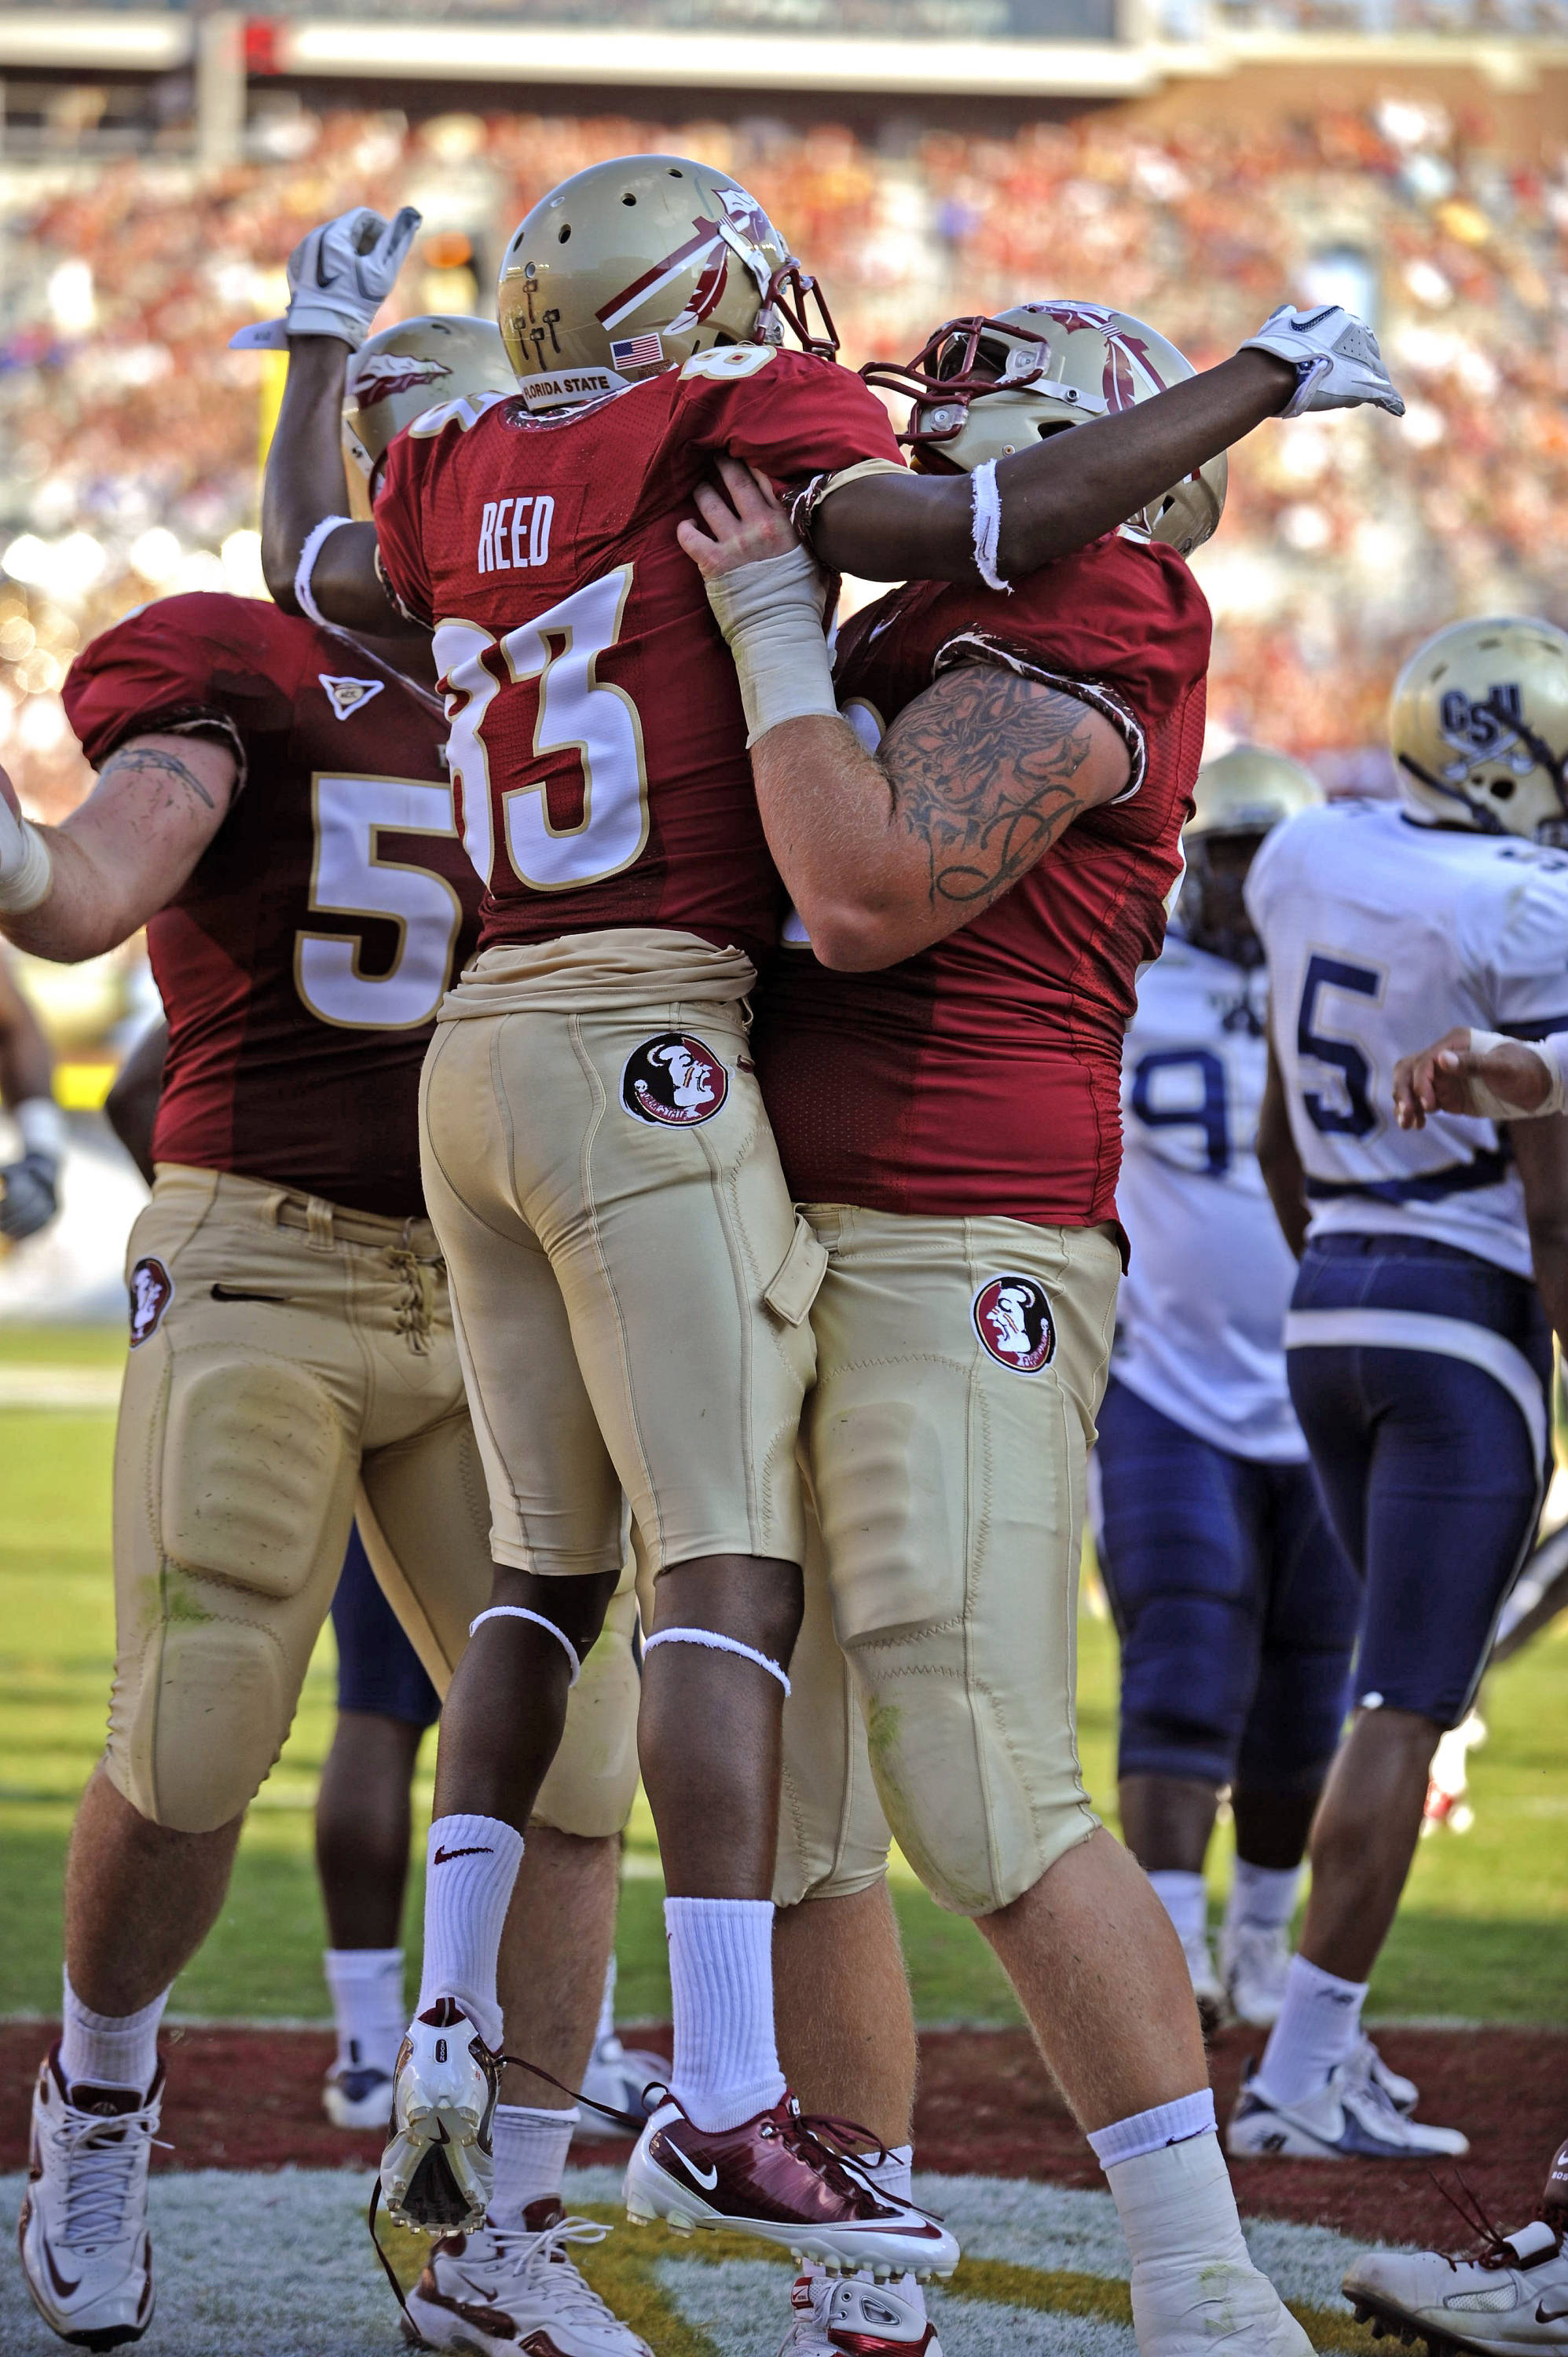 Bert Reed Celebrates with his lineman after scoring a touchdown